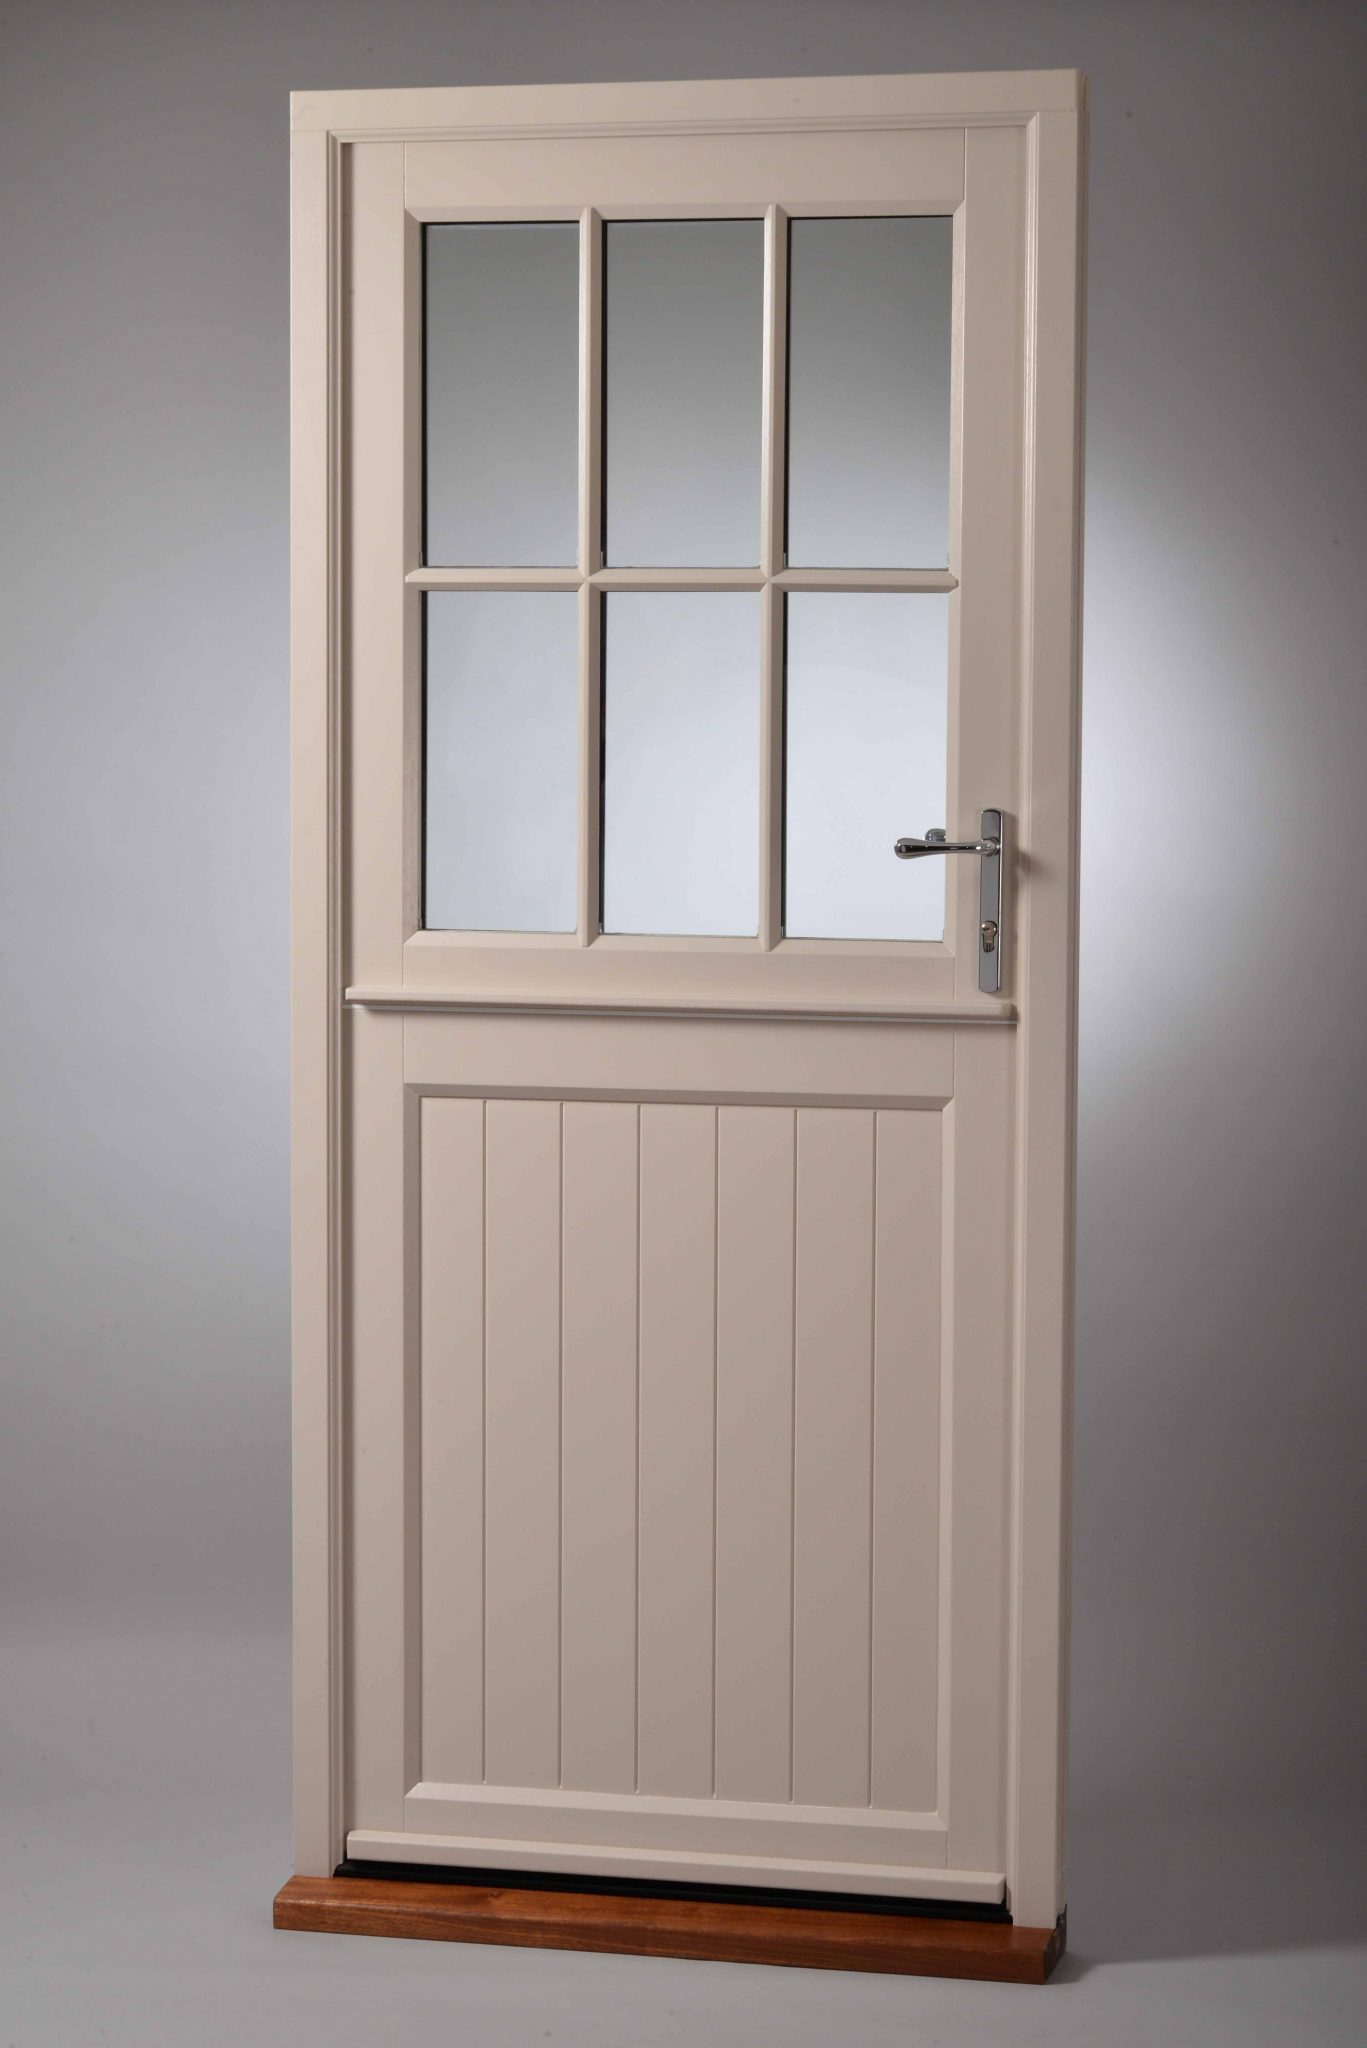 Timber stable doors by patchett joinery for Entrance doors